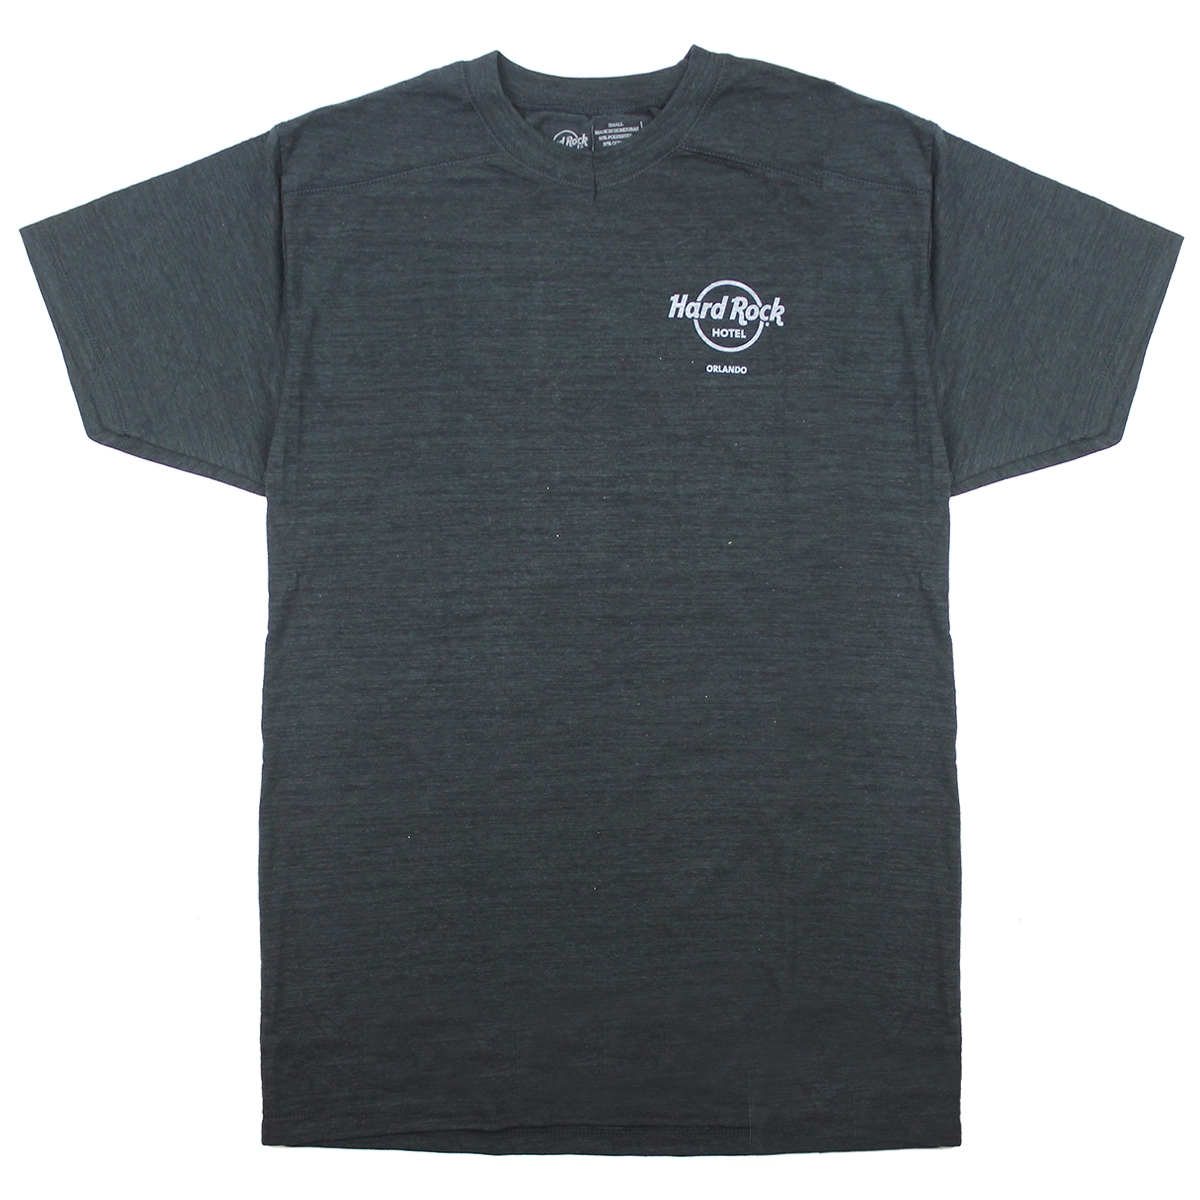 Mens Left Chest Logo V-neck Tee Black, Orlando Hotel 0